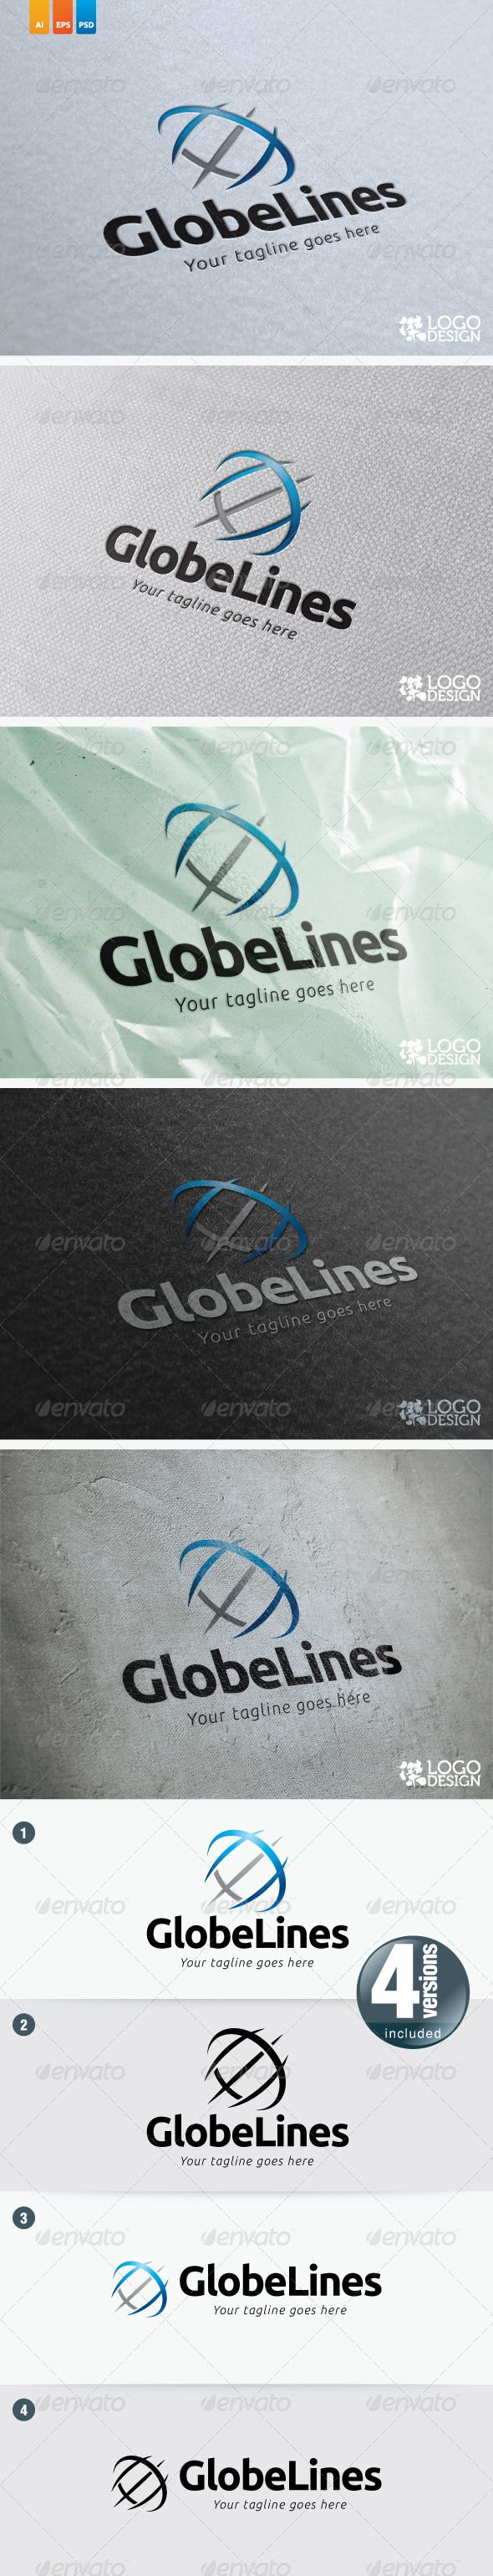 Globe Lines  #GraphicRiver         This logo perfectly use for marketing business, investment related businesses, internet apps, financial planning businesses and strategy ananlysis businesses as well.    Font: Ubuntu Bold, Ubuntu Italic ( font.ubuntu  )  Colour: CMYK  Files: .ai / .eps / .psd  #VectorEPS #AIIllustrator #arrow #chart #education #financial #global #globe #growing #increase #investment #marketing #objective #positive #seminar #strategist #symbol #uptrend